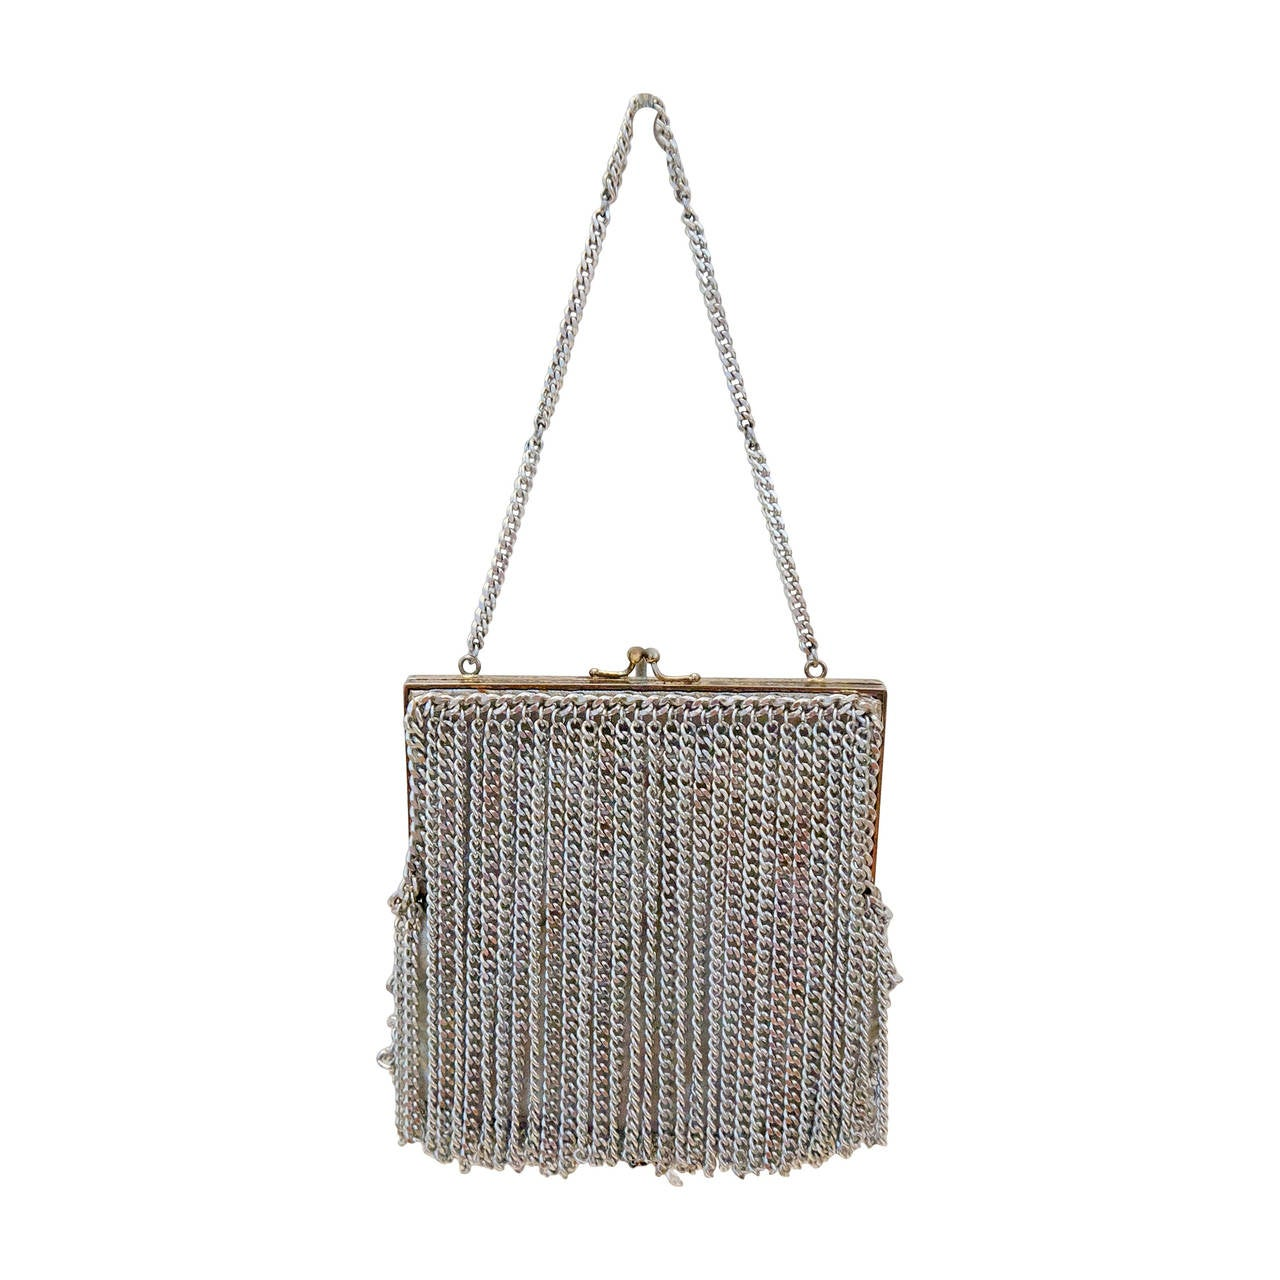 1950's Walborg Metal Chain Evening Bag